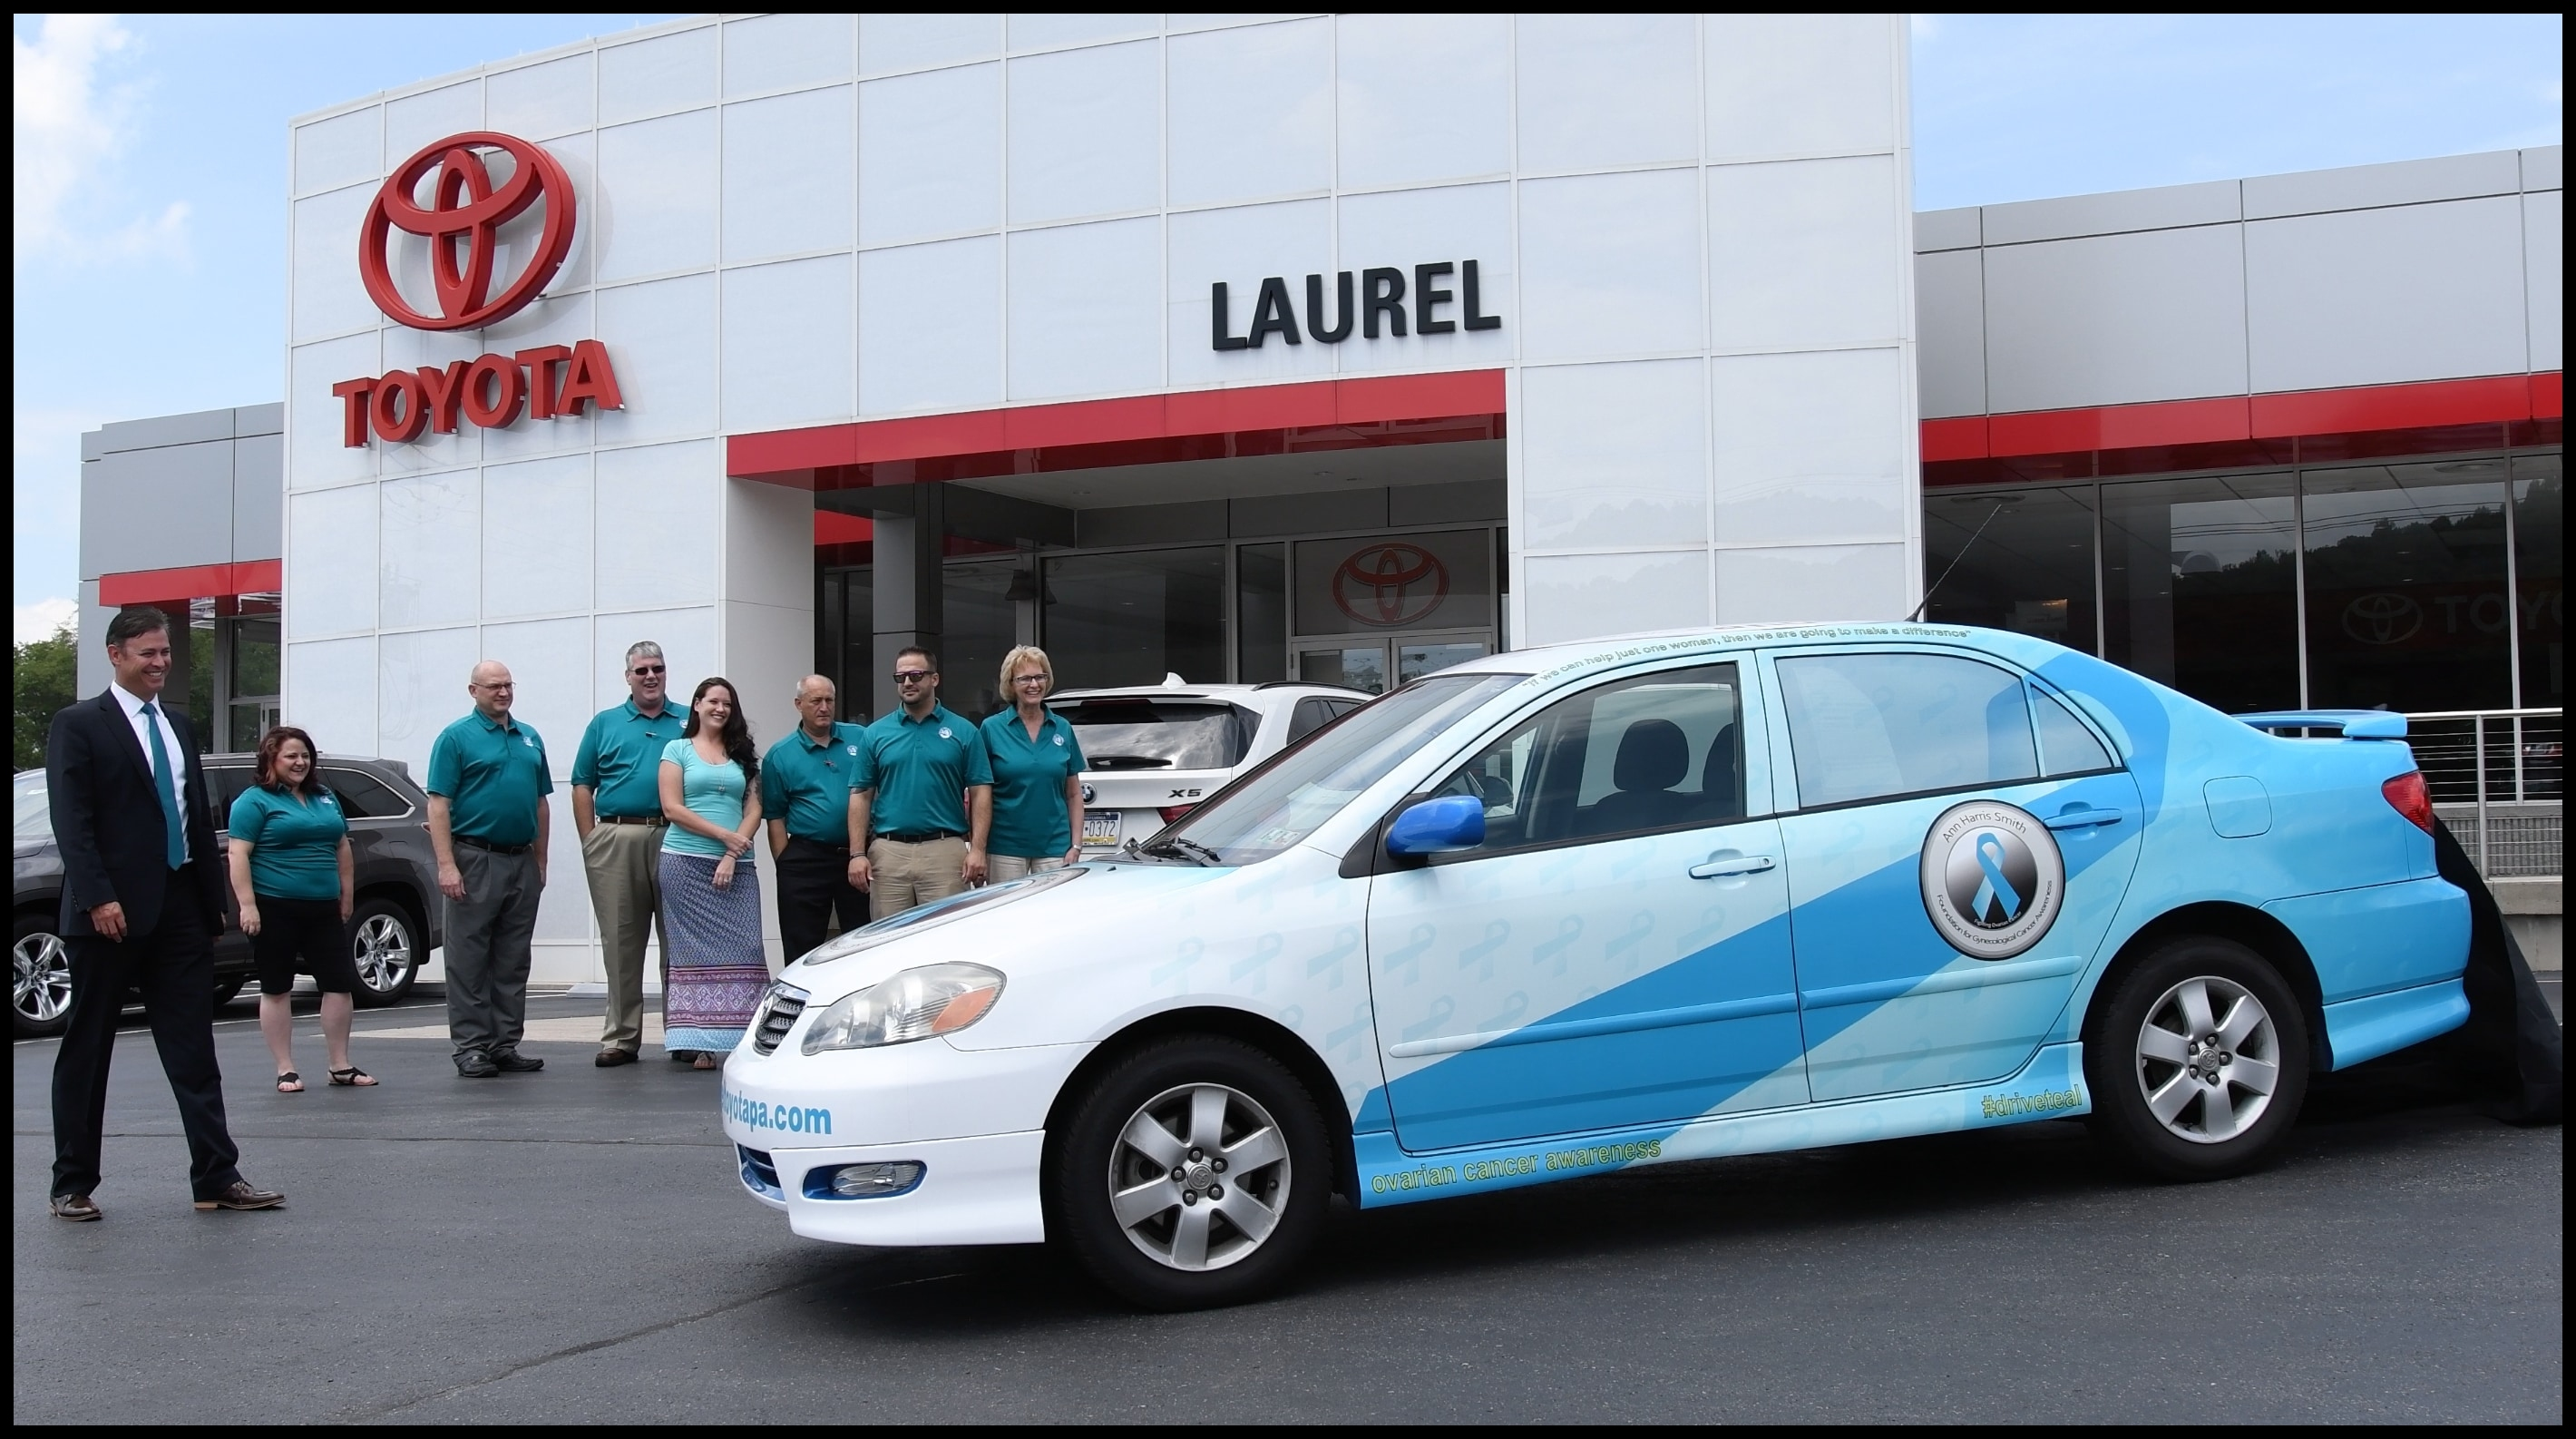 At Laurel Toyota we recently unveiled our teal Toyota Corolla to raise awareness for ovarian cancer Our vehicle will be featured at events that the Ann